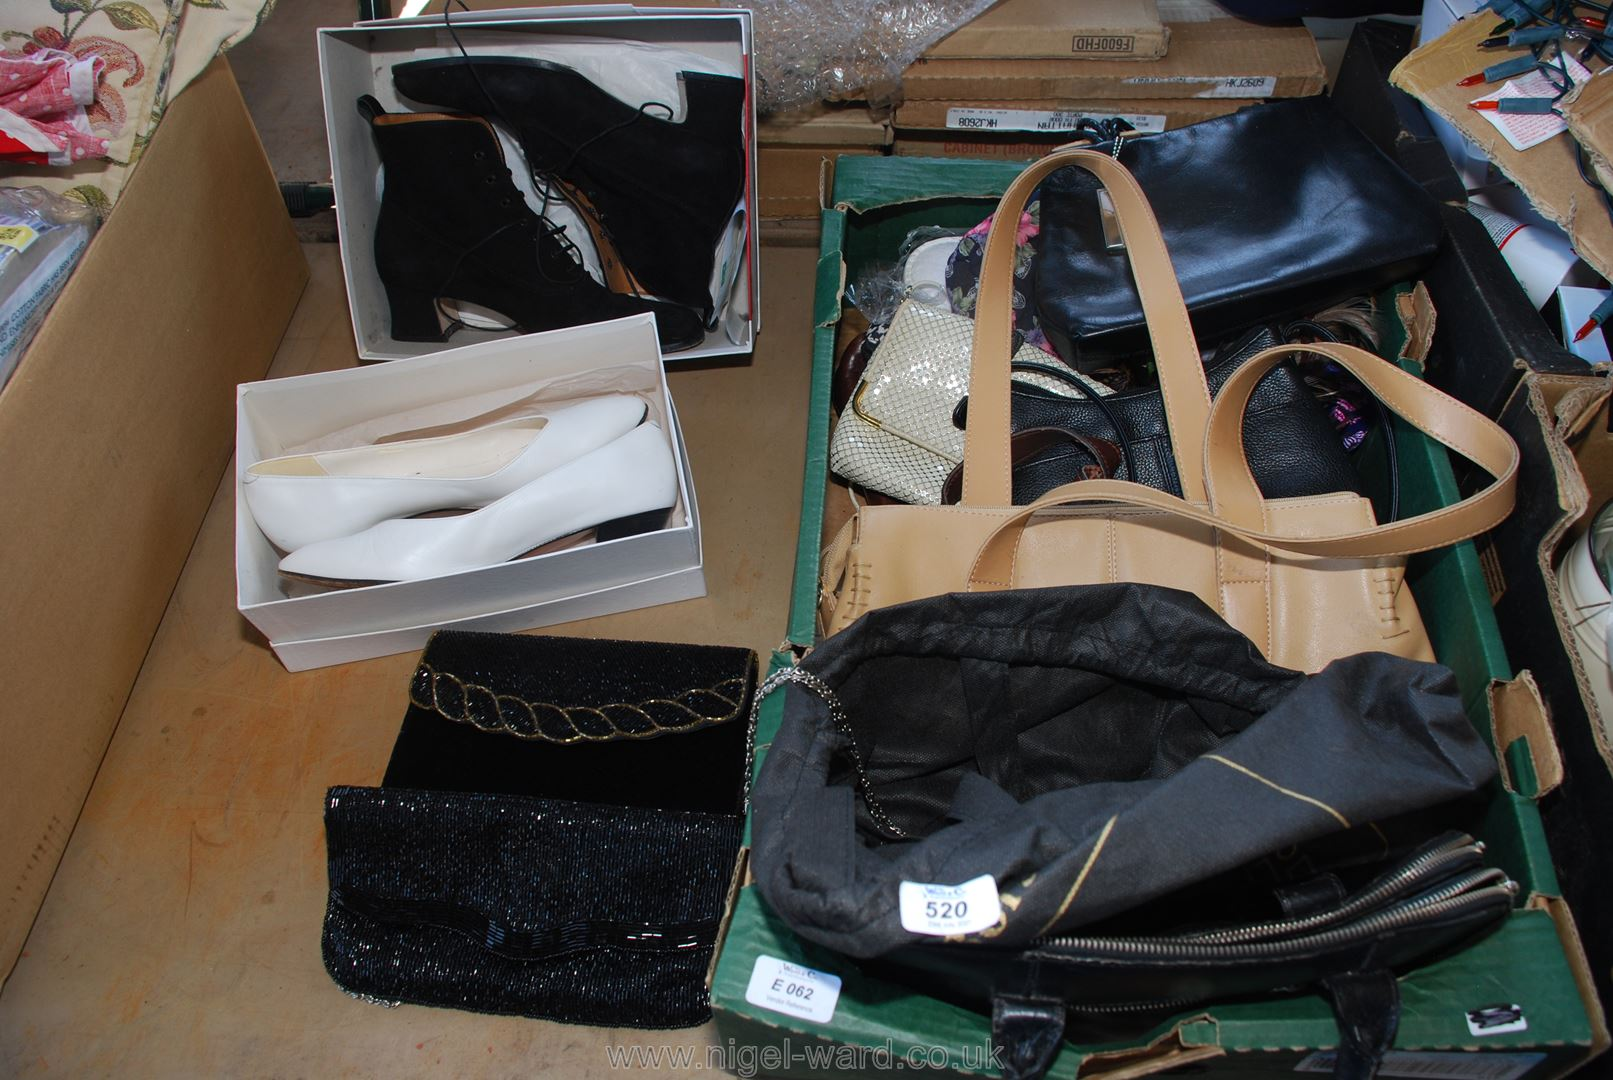 A quantity of handbags and boxed ladies shoes (size 6/euro 39).